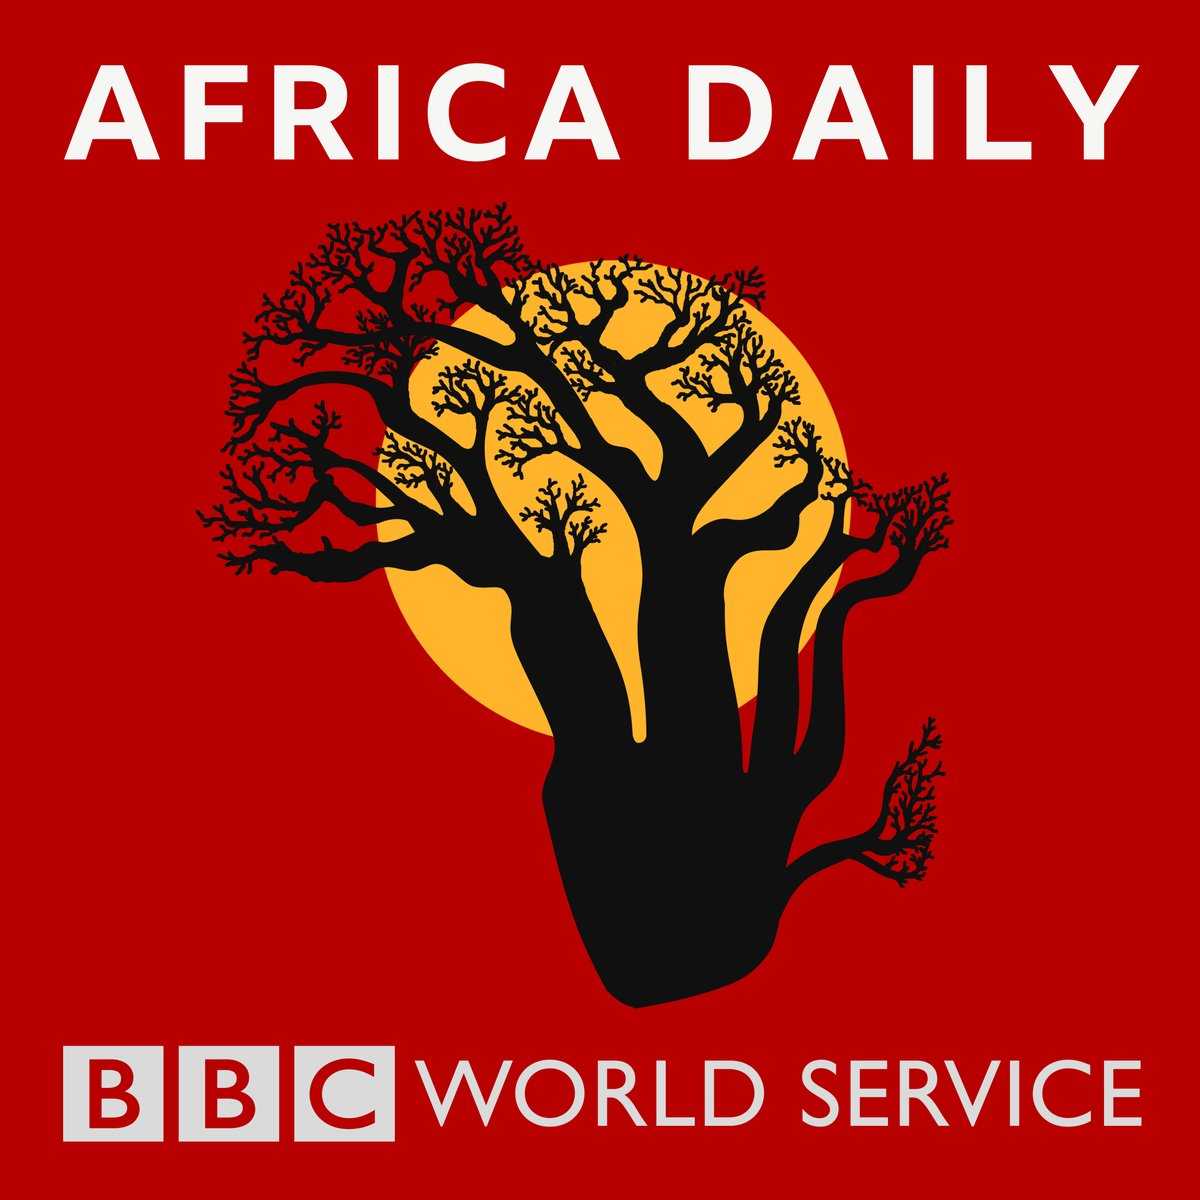 Will there be enough coronavirus vaccines for Africa's 1.3 billion population? And who can expect to get them first?  Download the first ever episode of our Africa Daily podcast with @kasujja